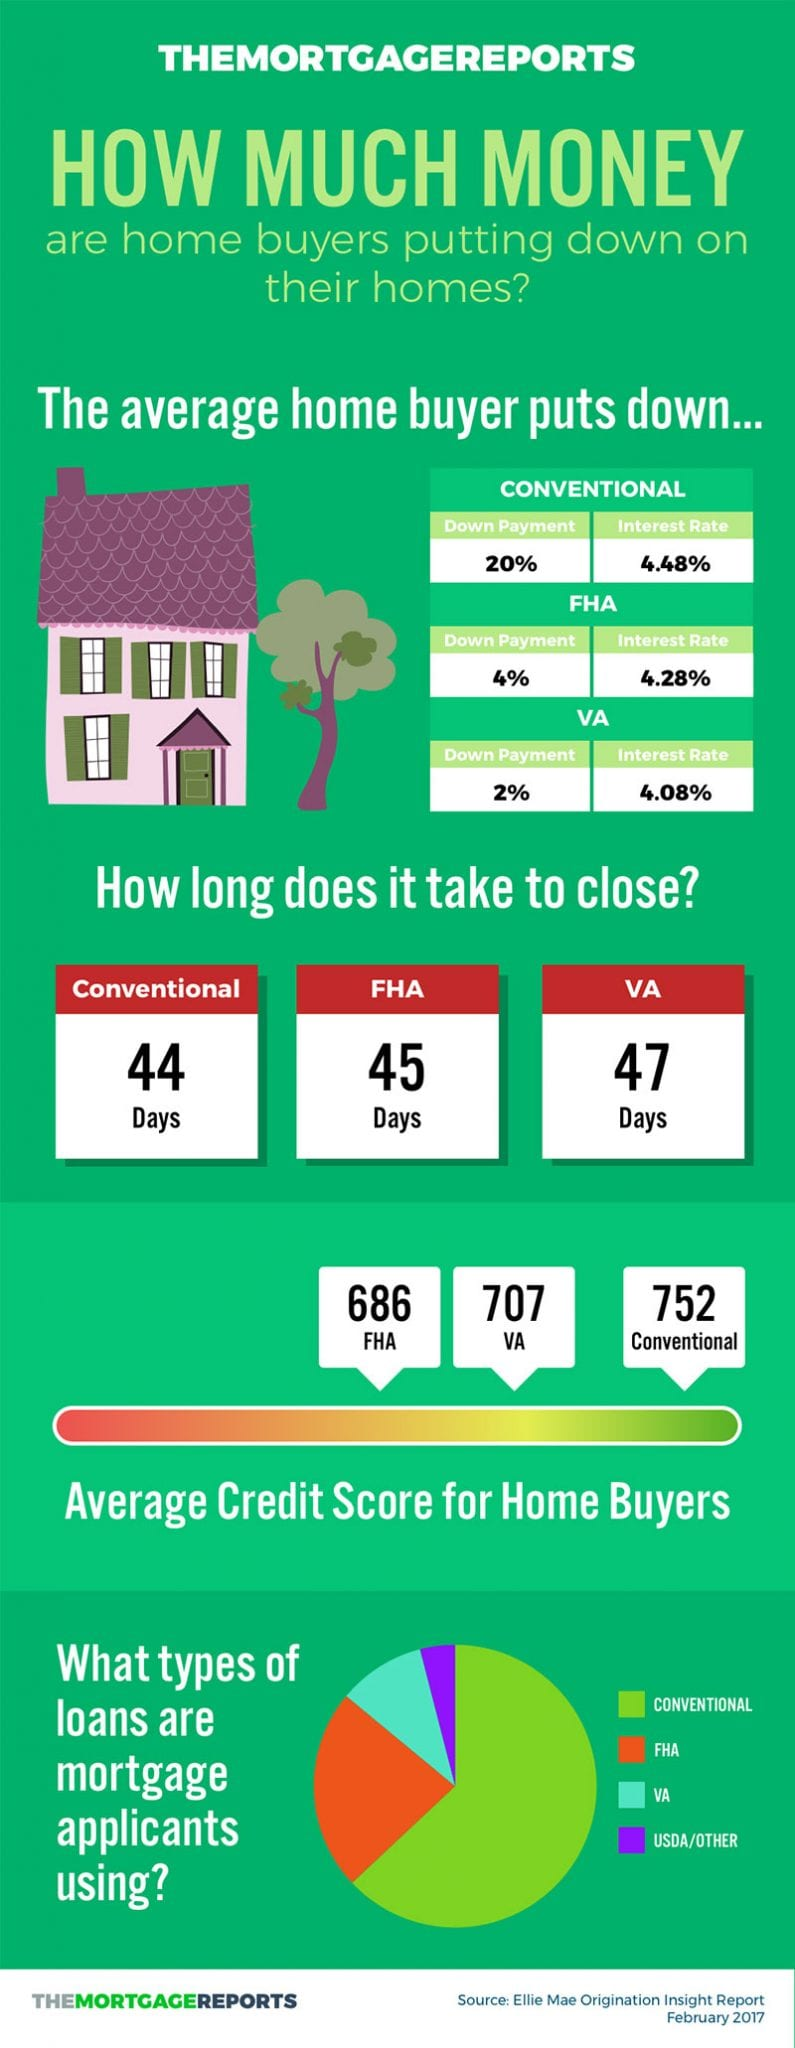 Mortgage Programs Infographic - FHA VA USDA Conv